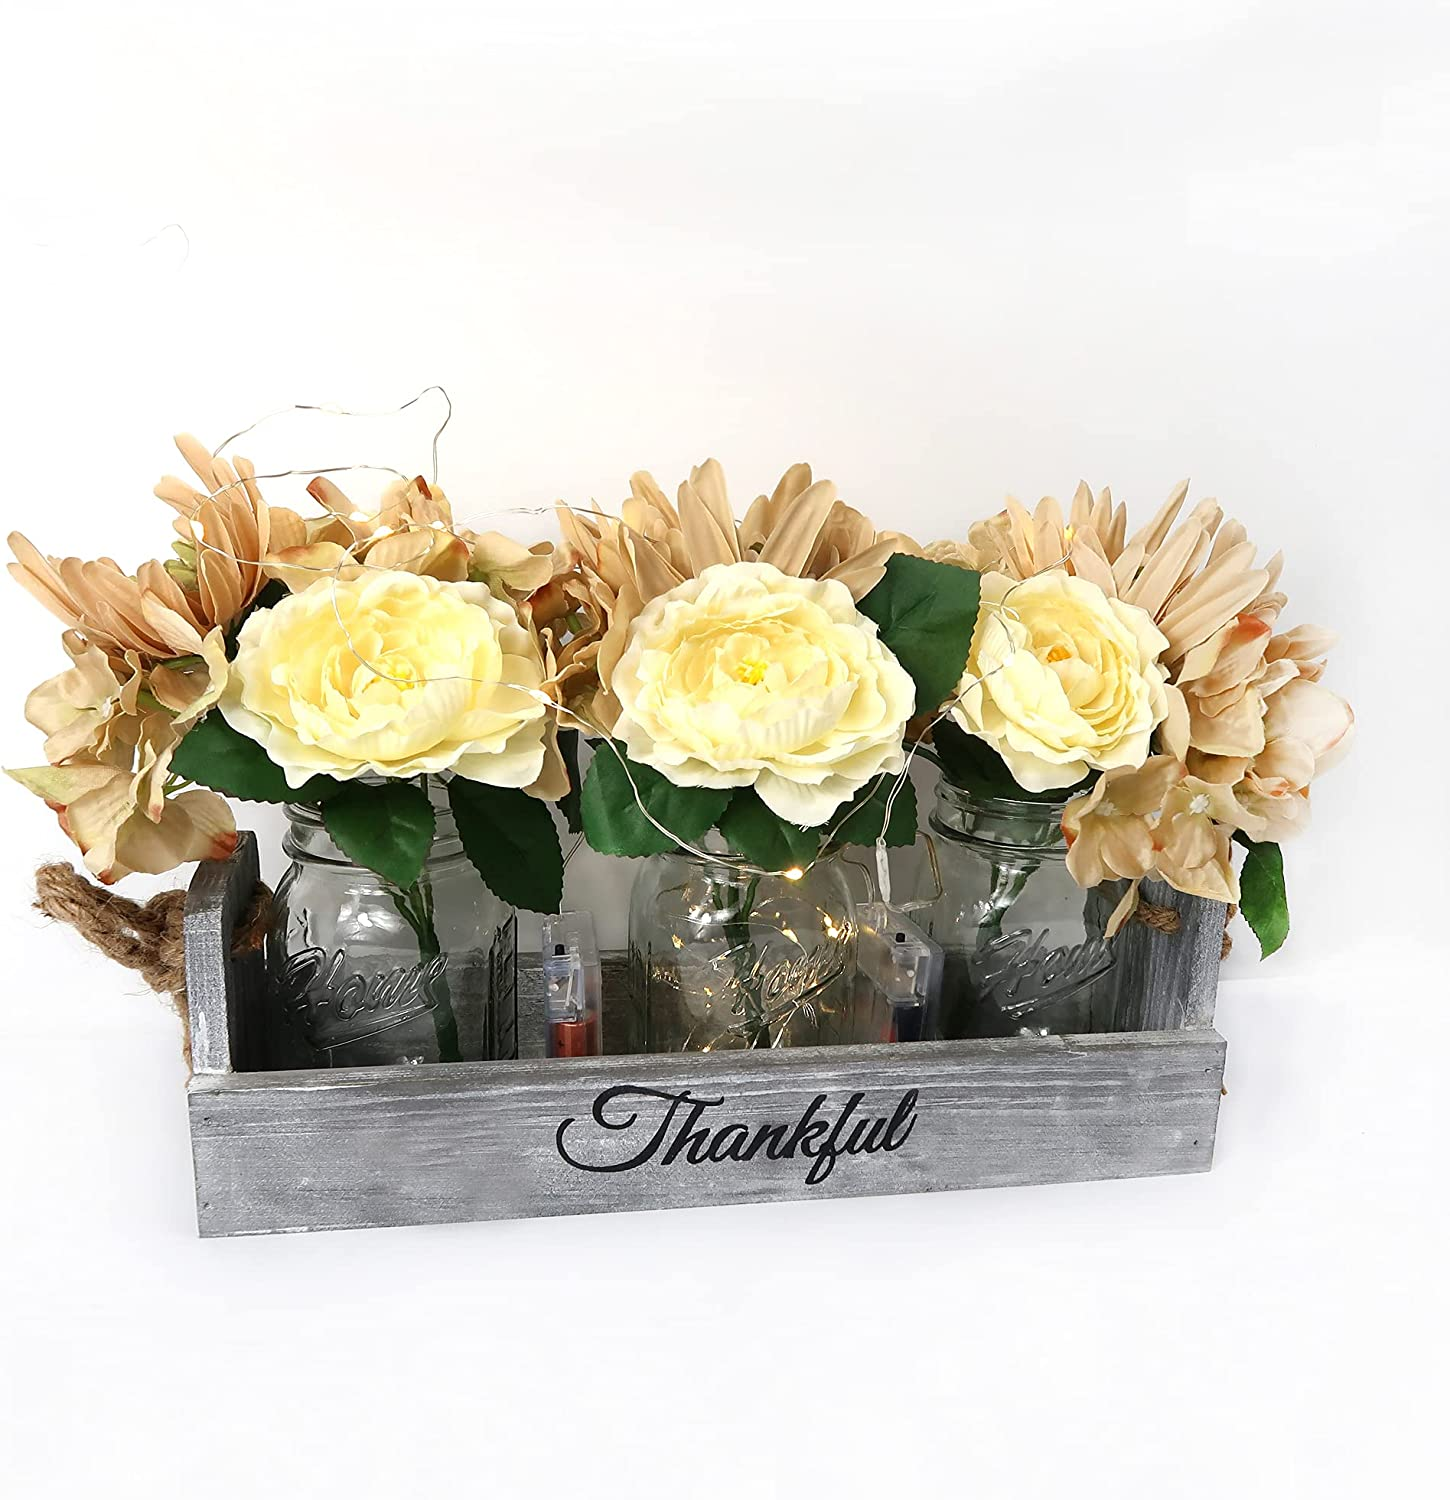 Mason Jar Centerpiece for Table - Besuerte Country Kitchen Decor with Thankful Farmhouse Box, LED String Light & Decorative Flowers for Home Kitchen Utensil Holder, Coffee Table Display